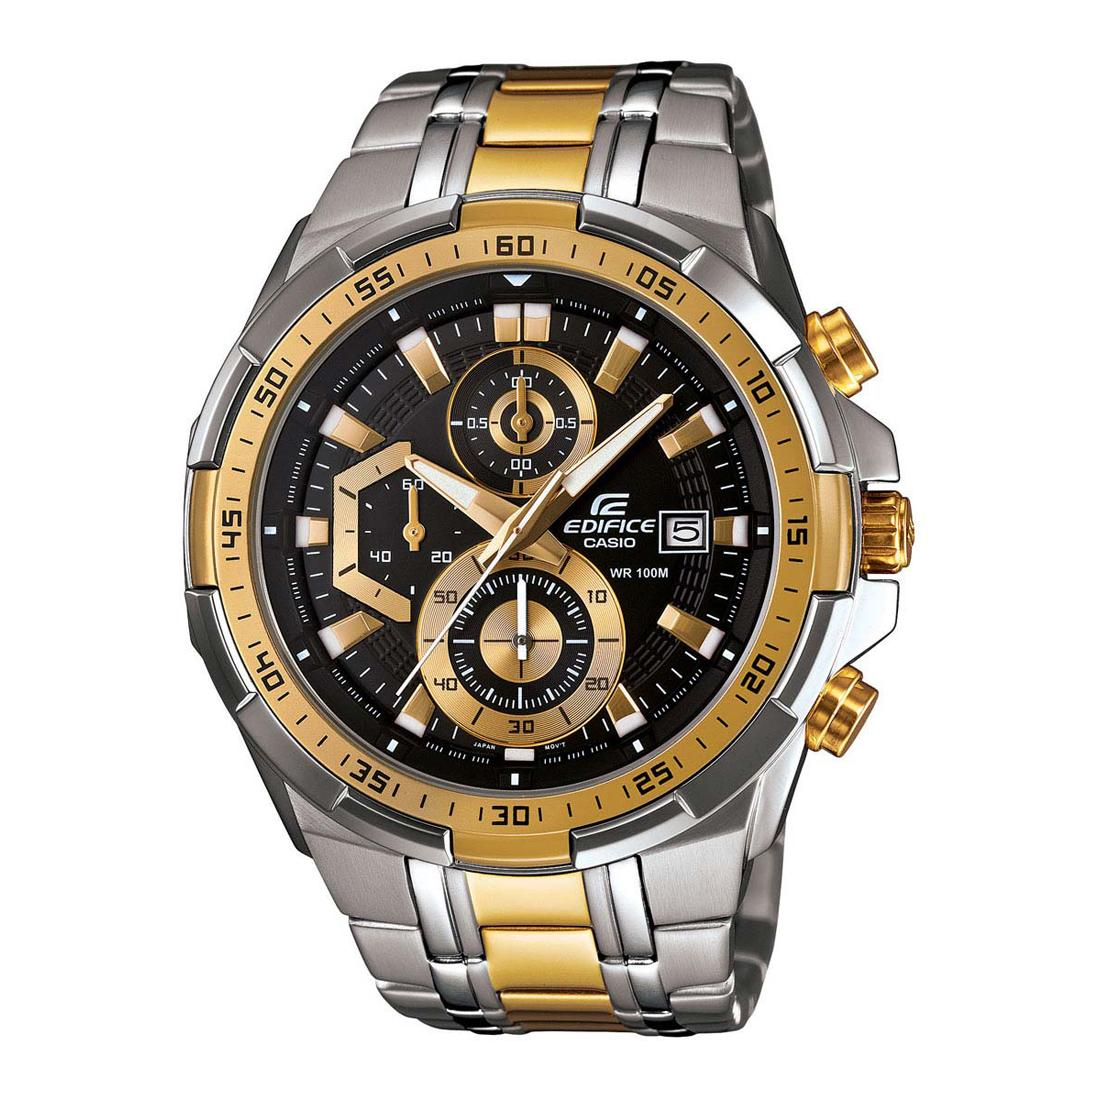 149b415a6d4b Casio Edifice EFR-539SG-1AVUDF Analog Wrist Watch For Men - Silver and